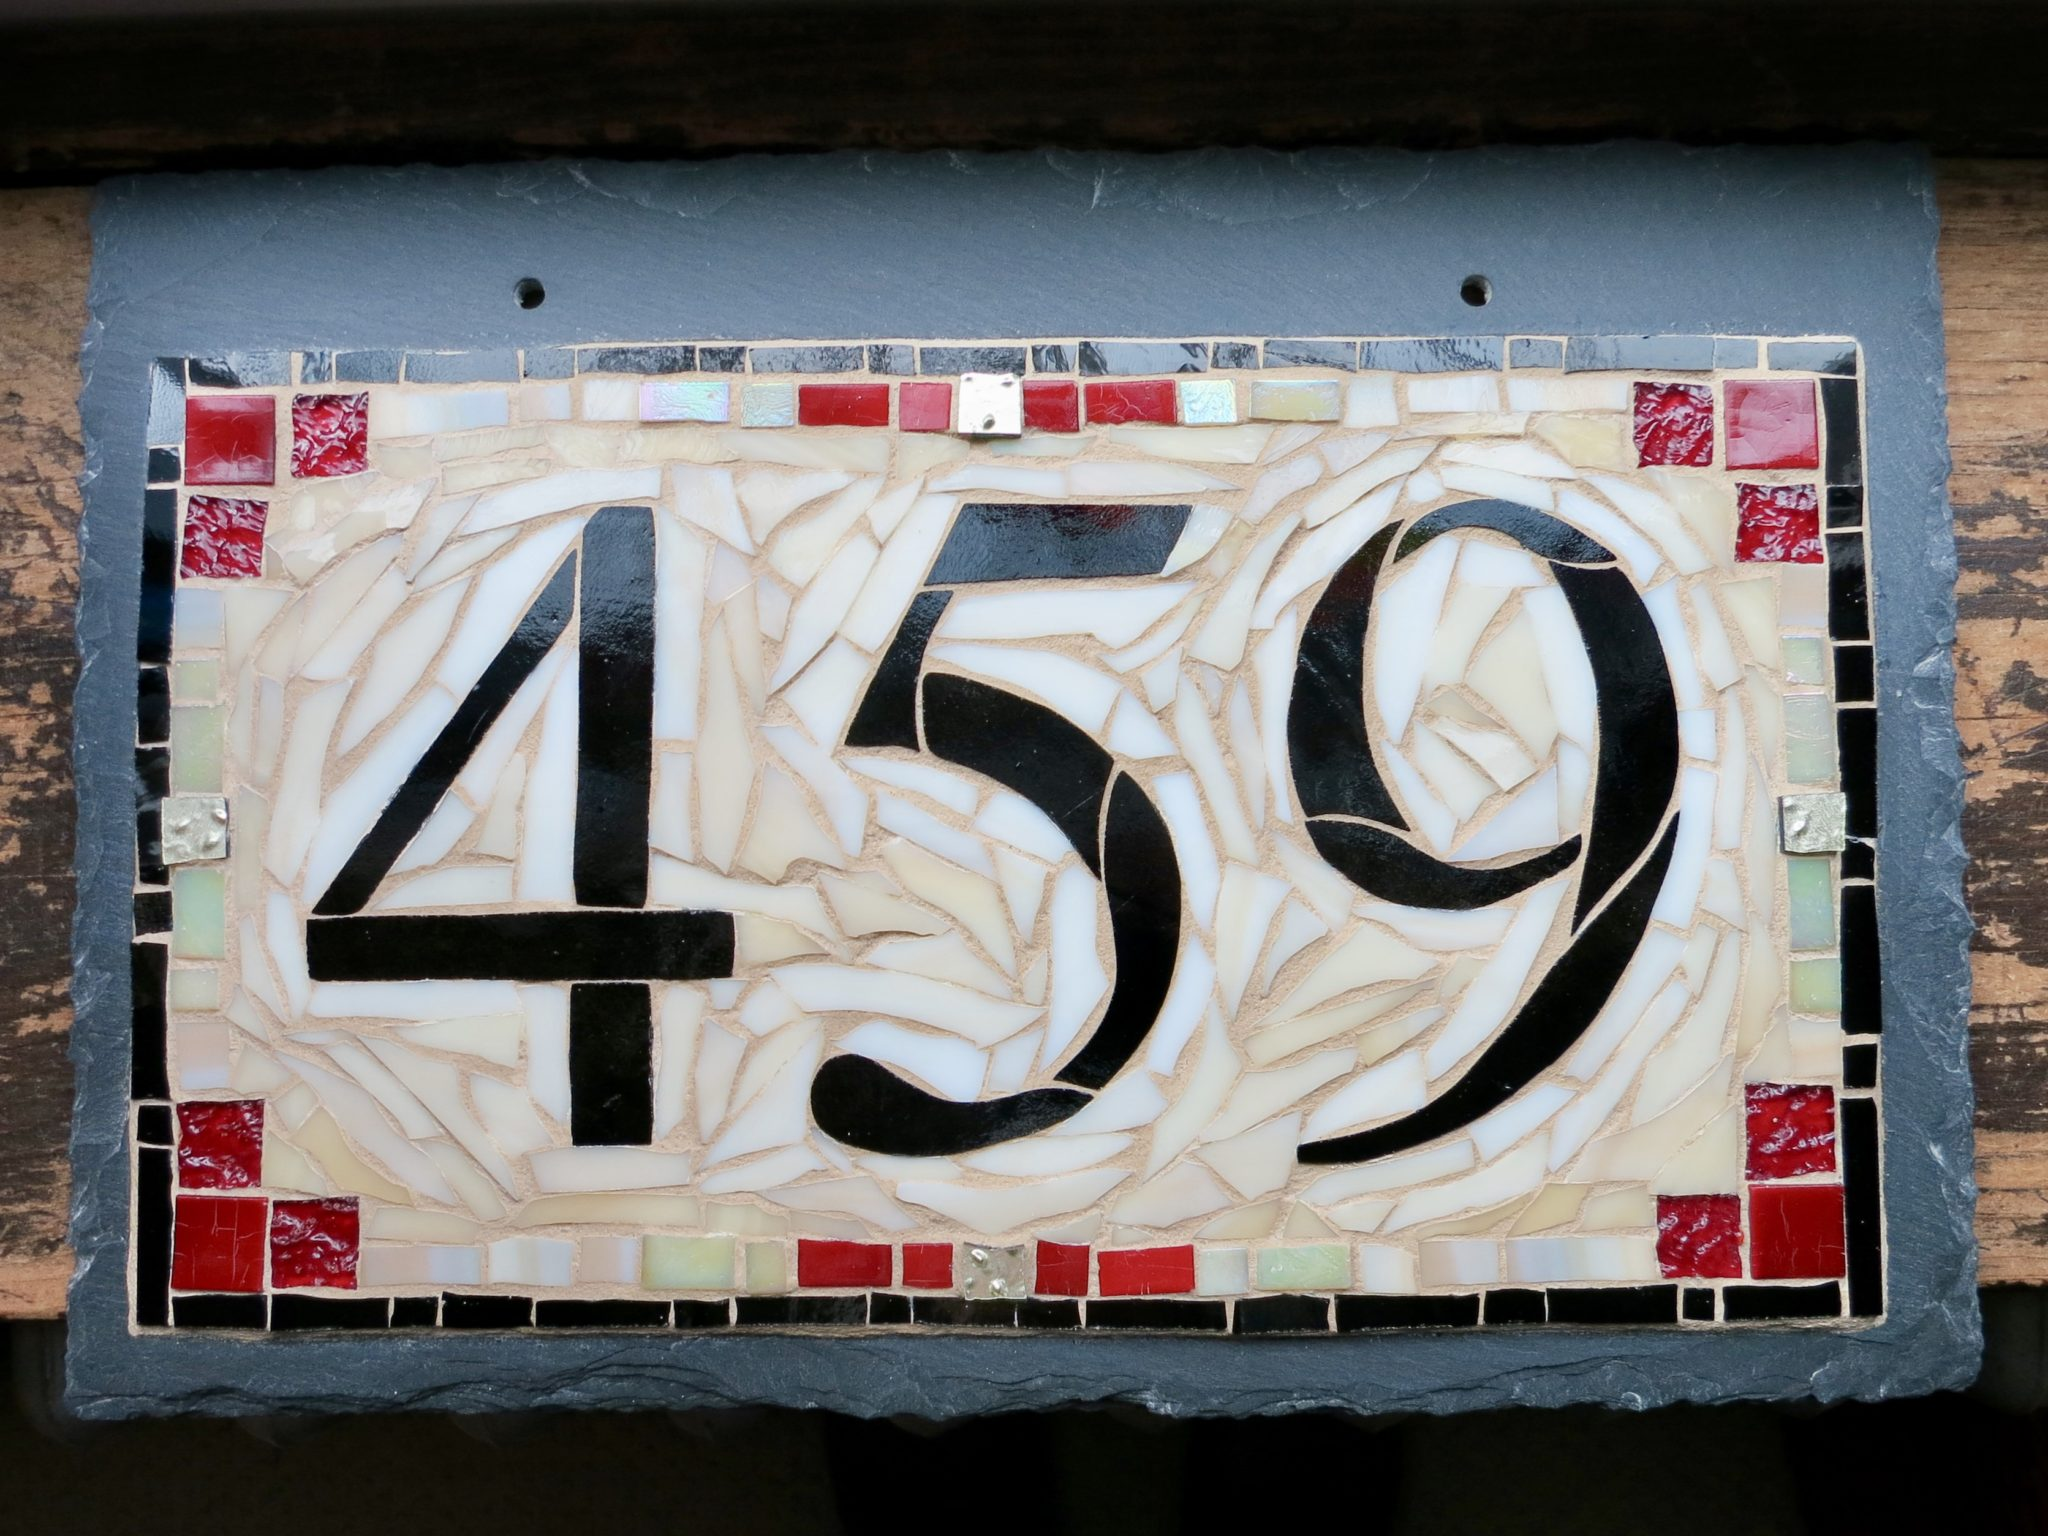 Cranberry Cream 3 Digit House Number by Nutmeg Designs